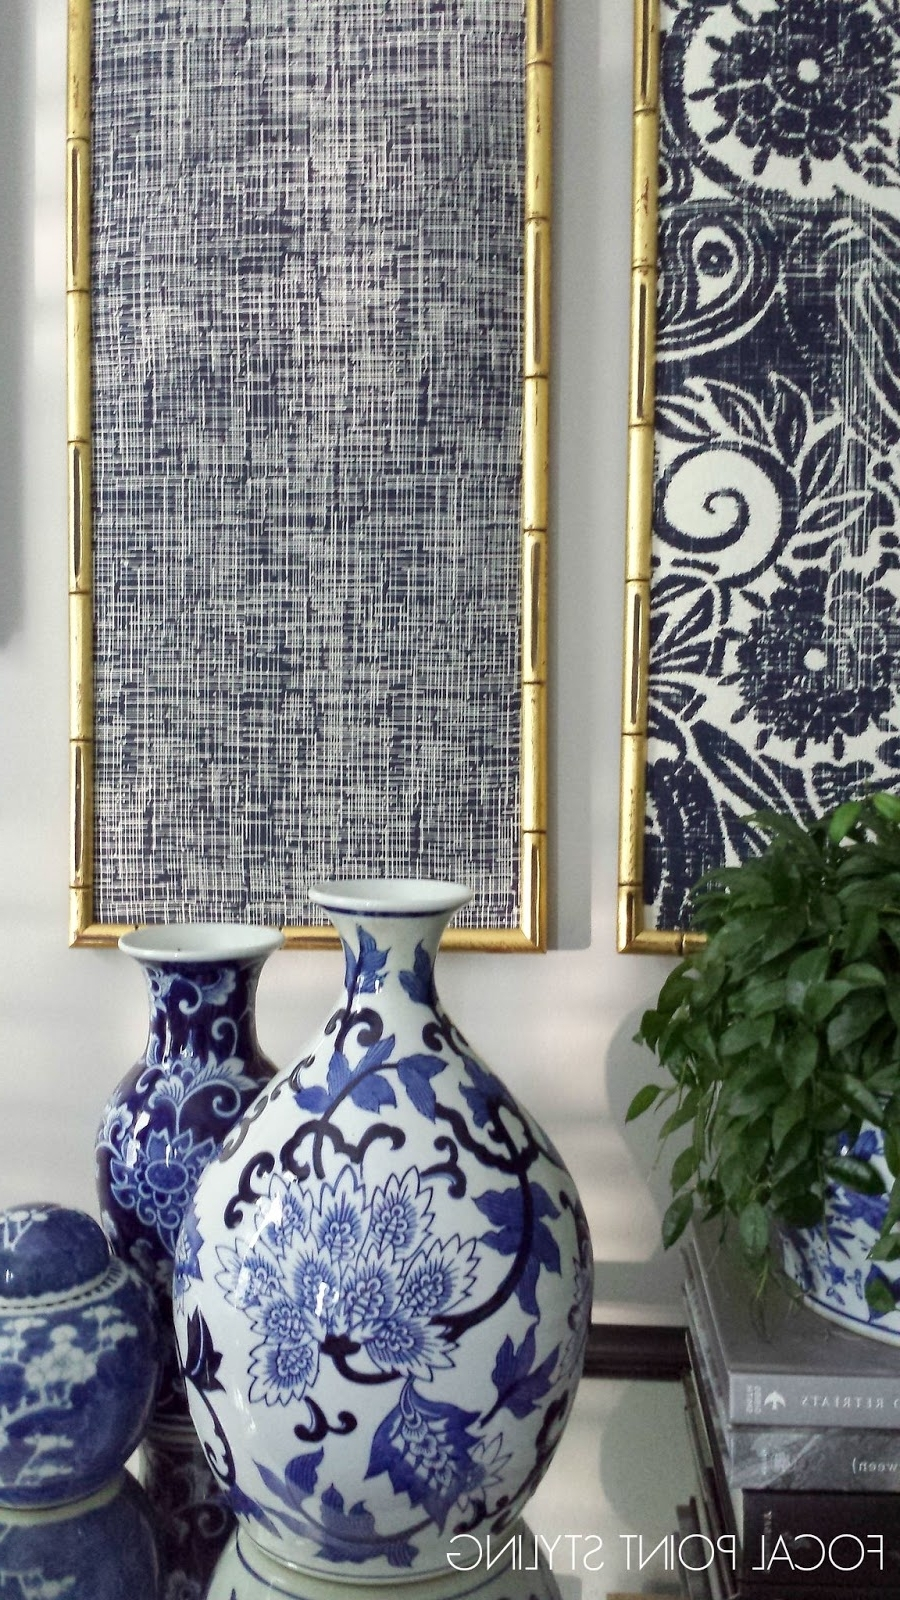 Framed Wall Art At Home And Interior Design Ideas Throughout Most Up To Date Ikat Fabric Wall Art (View 6 of 15)